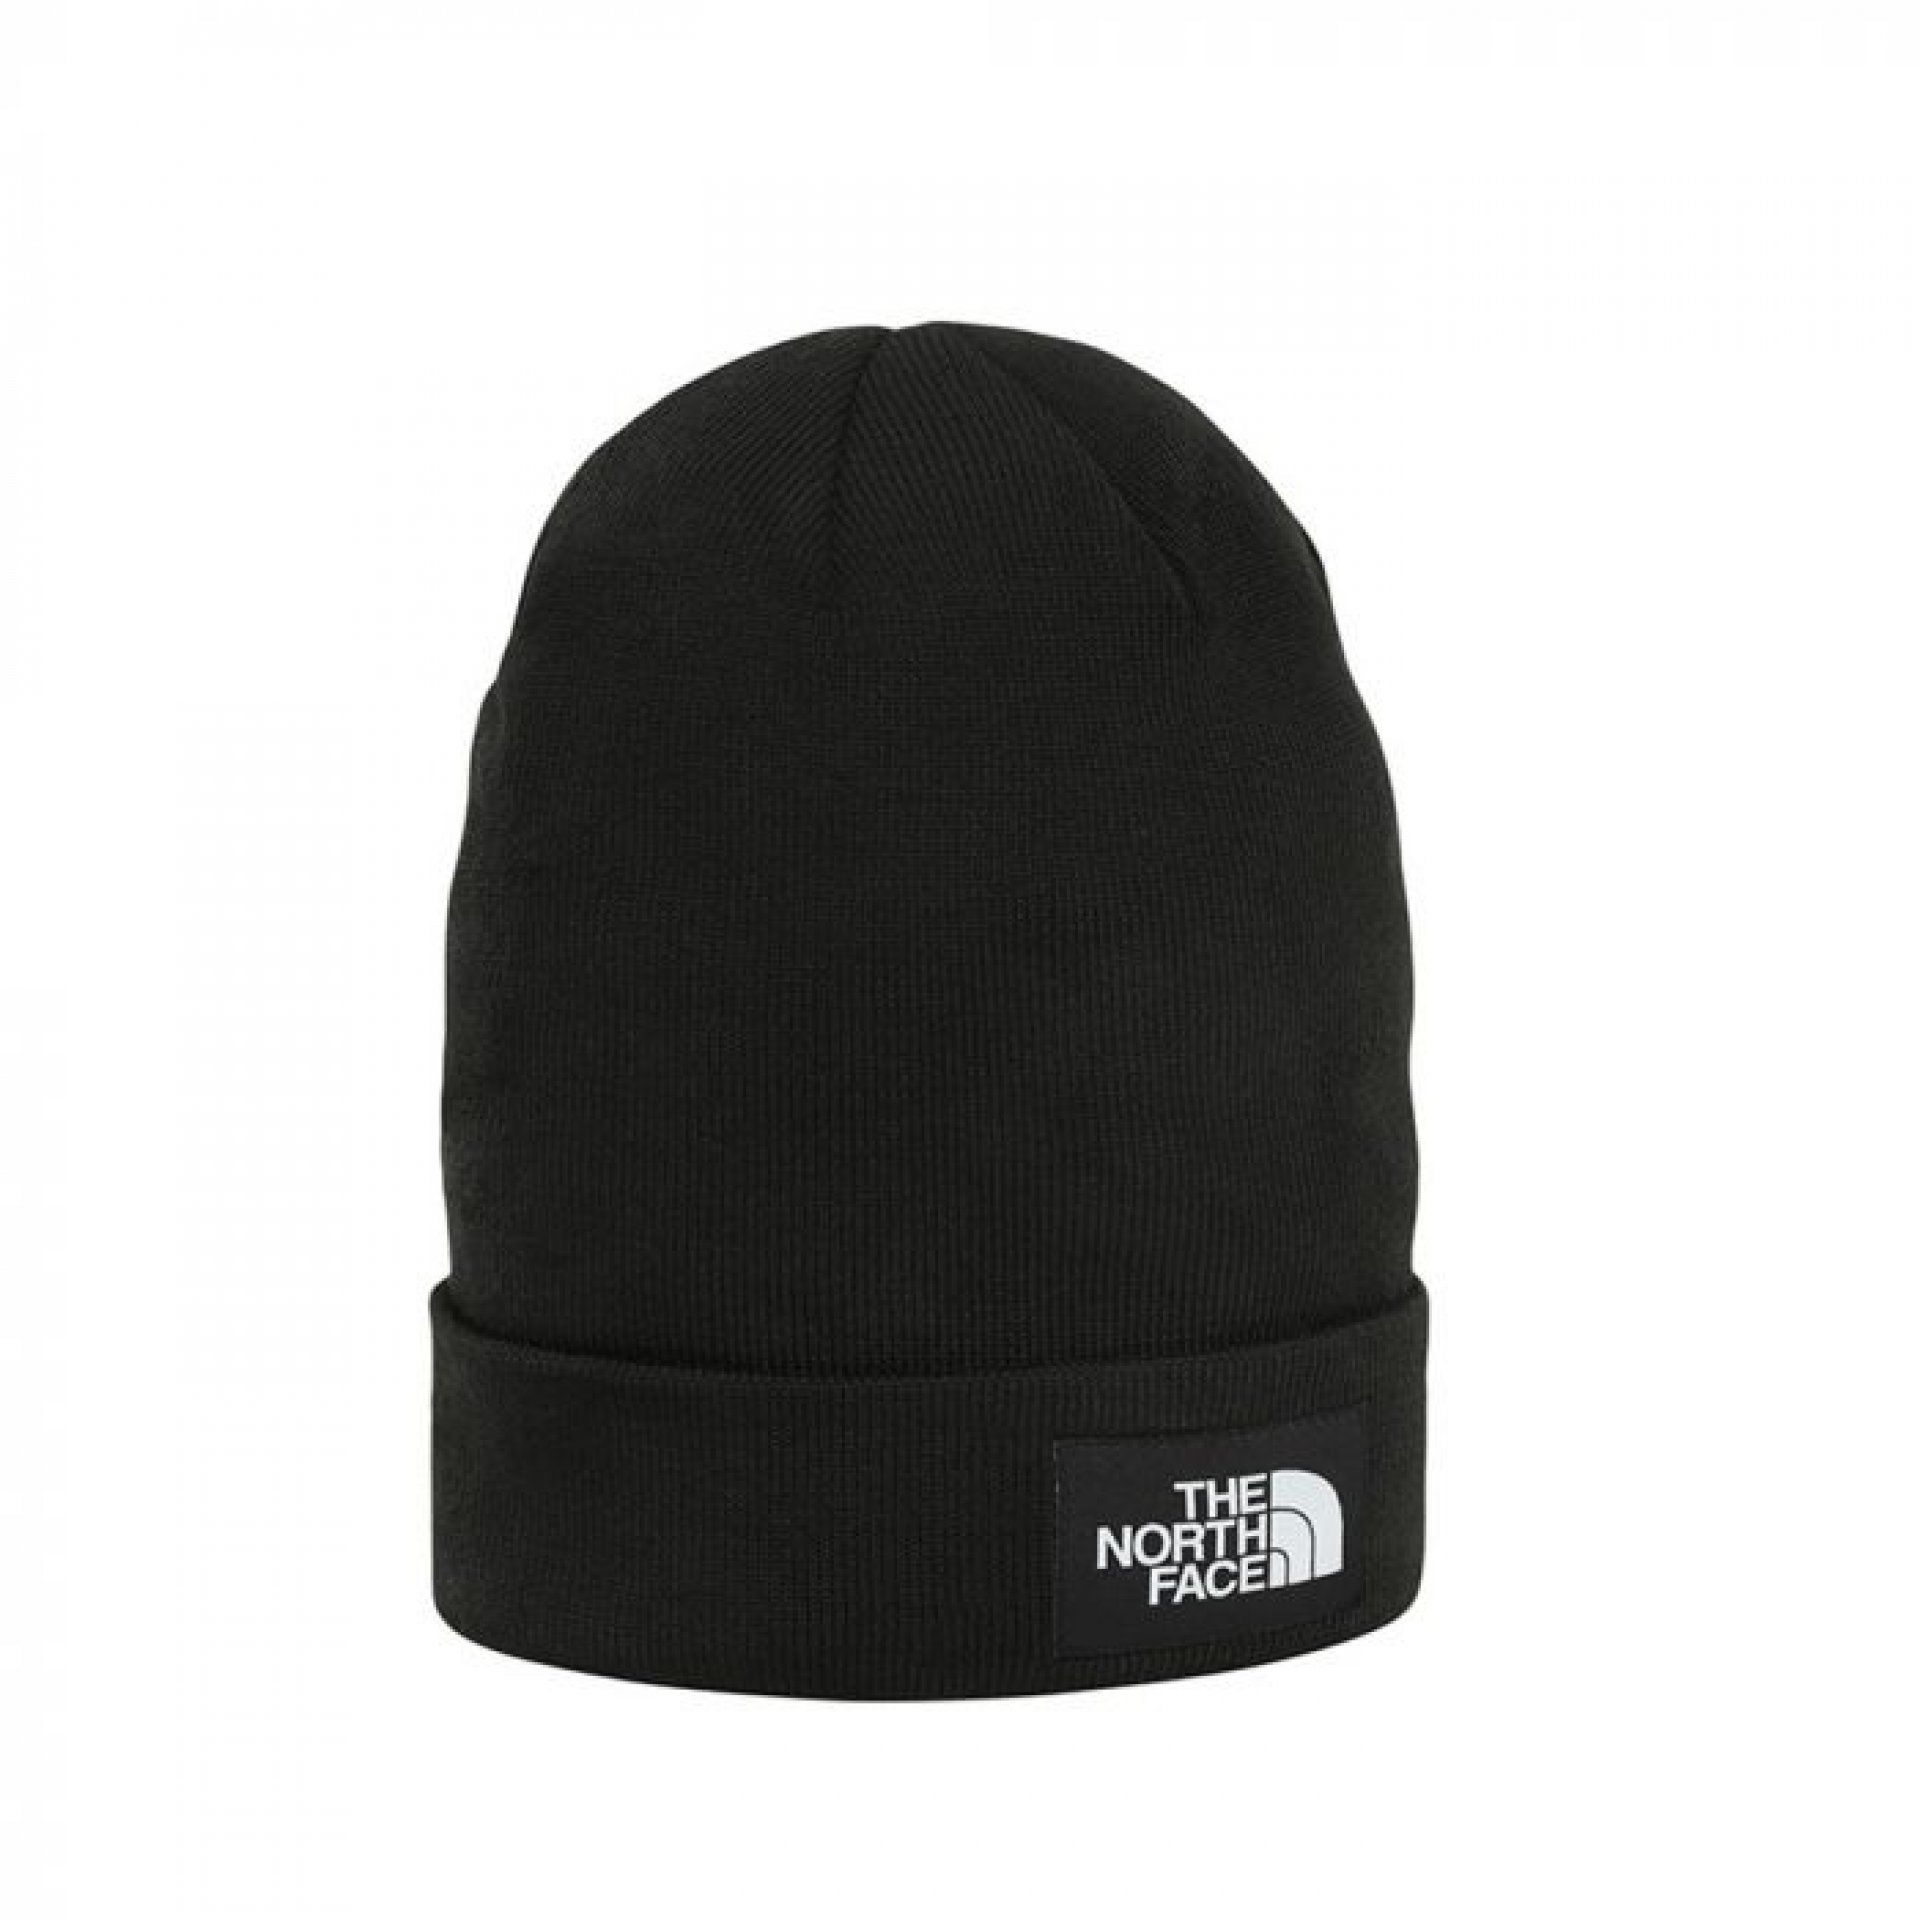 CZAPKA THE NORTH FACE DOCK WORKER TNF BLACK|WEATHERED BLACK